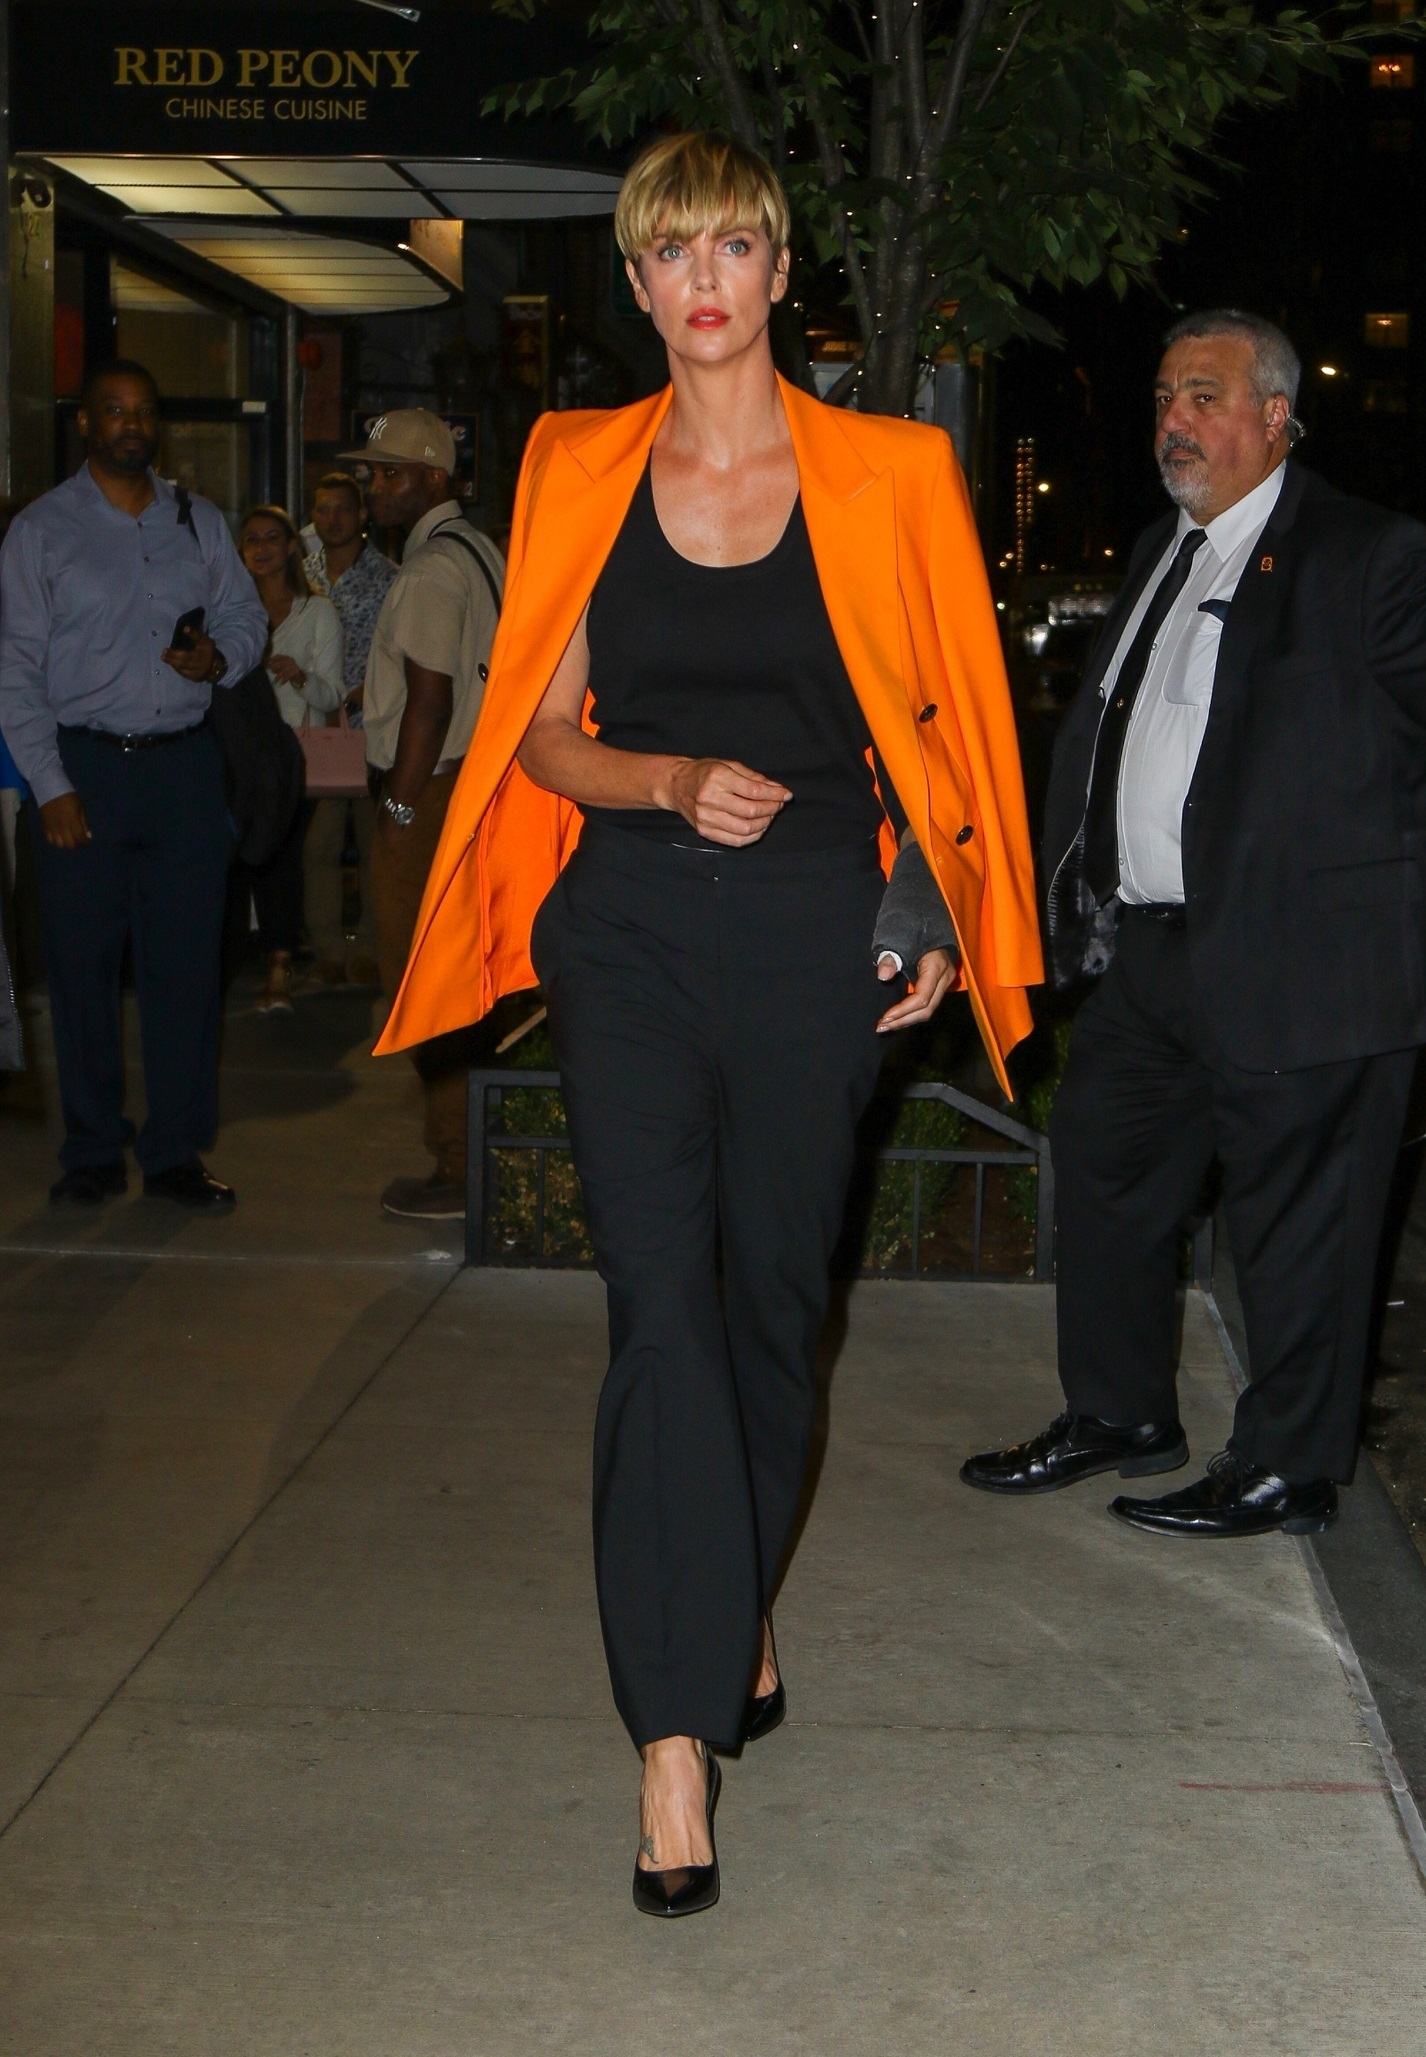 New York, NY  - Charlize Theron looks stylish in an all-black ensemble and orange blazer while out and about in New York.  BACKGRID USA 24 SEPTEMBER 2019, Image: 472984227, License: Rights-managed, Restrictions: , Model Release: no, Credit line: Profimedia, Backgrid USA, Fernando Ramales / BACKGRID